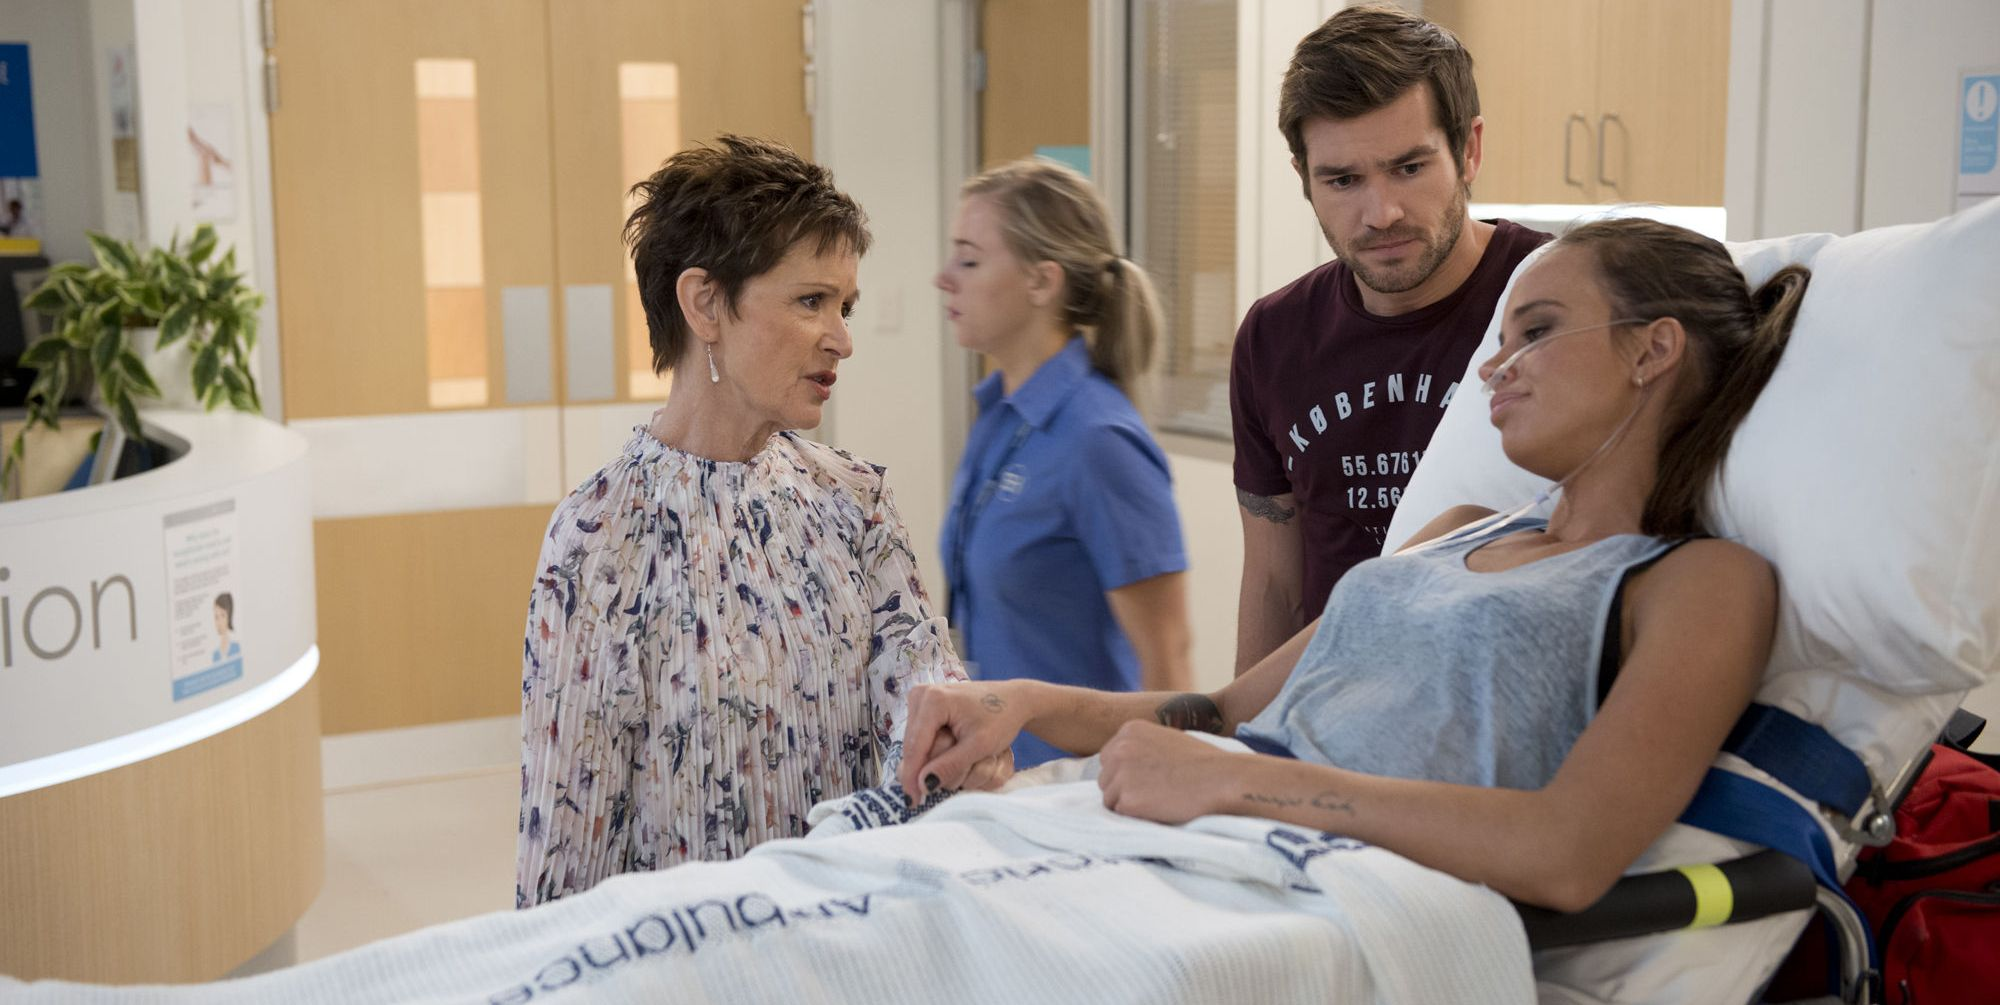 Neighbours: 15 new spoiler pictures reveal Bea Nilsson's garage fire aftermath